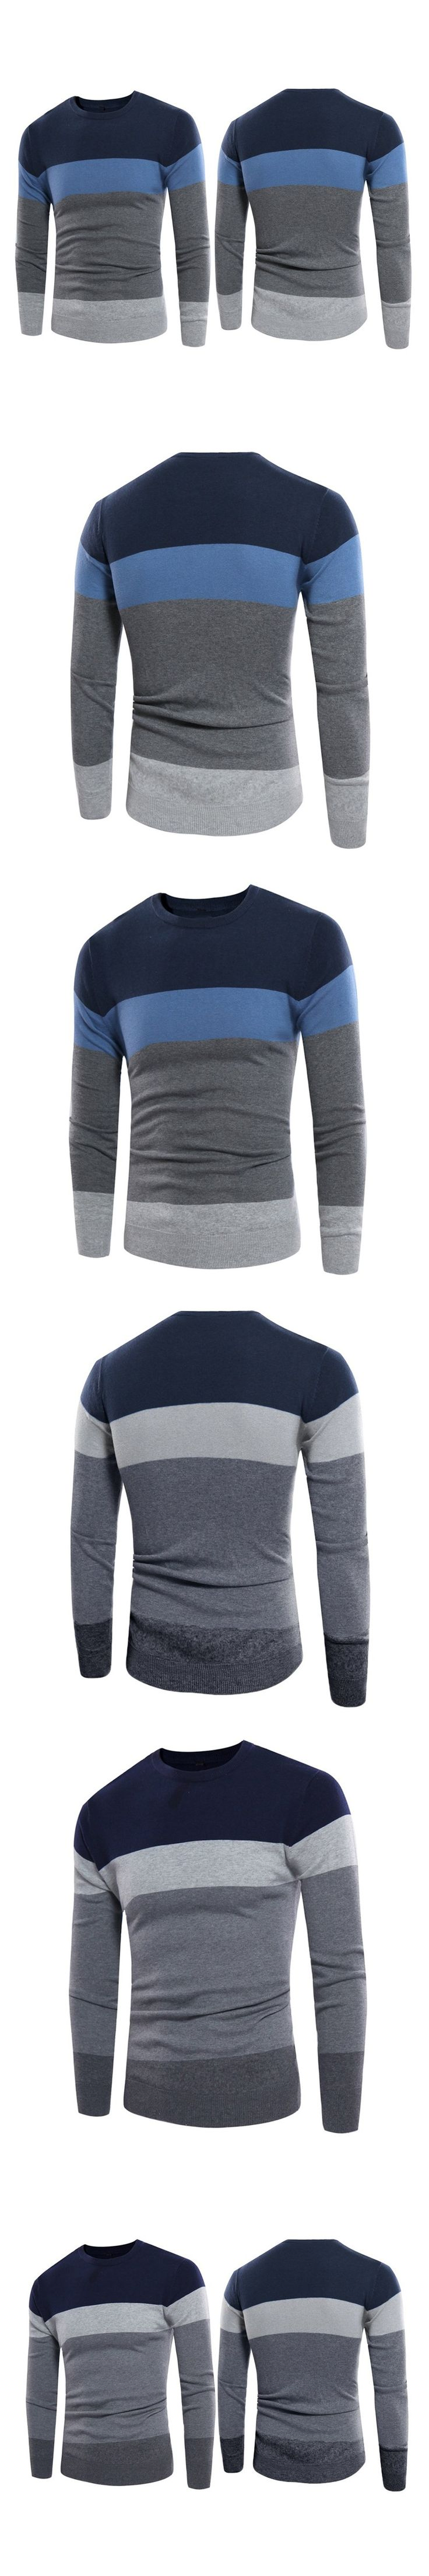 2017 New Autumn Winter Casual Thick Warm Cashmere Sweater Men Pullovers Brand Pullover Long Sleeve V-Neck Slim Knitwear Sweaters